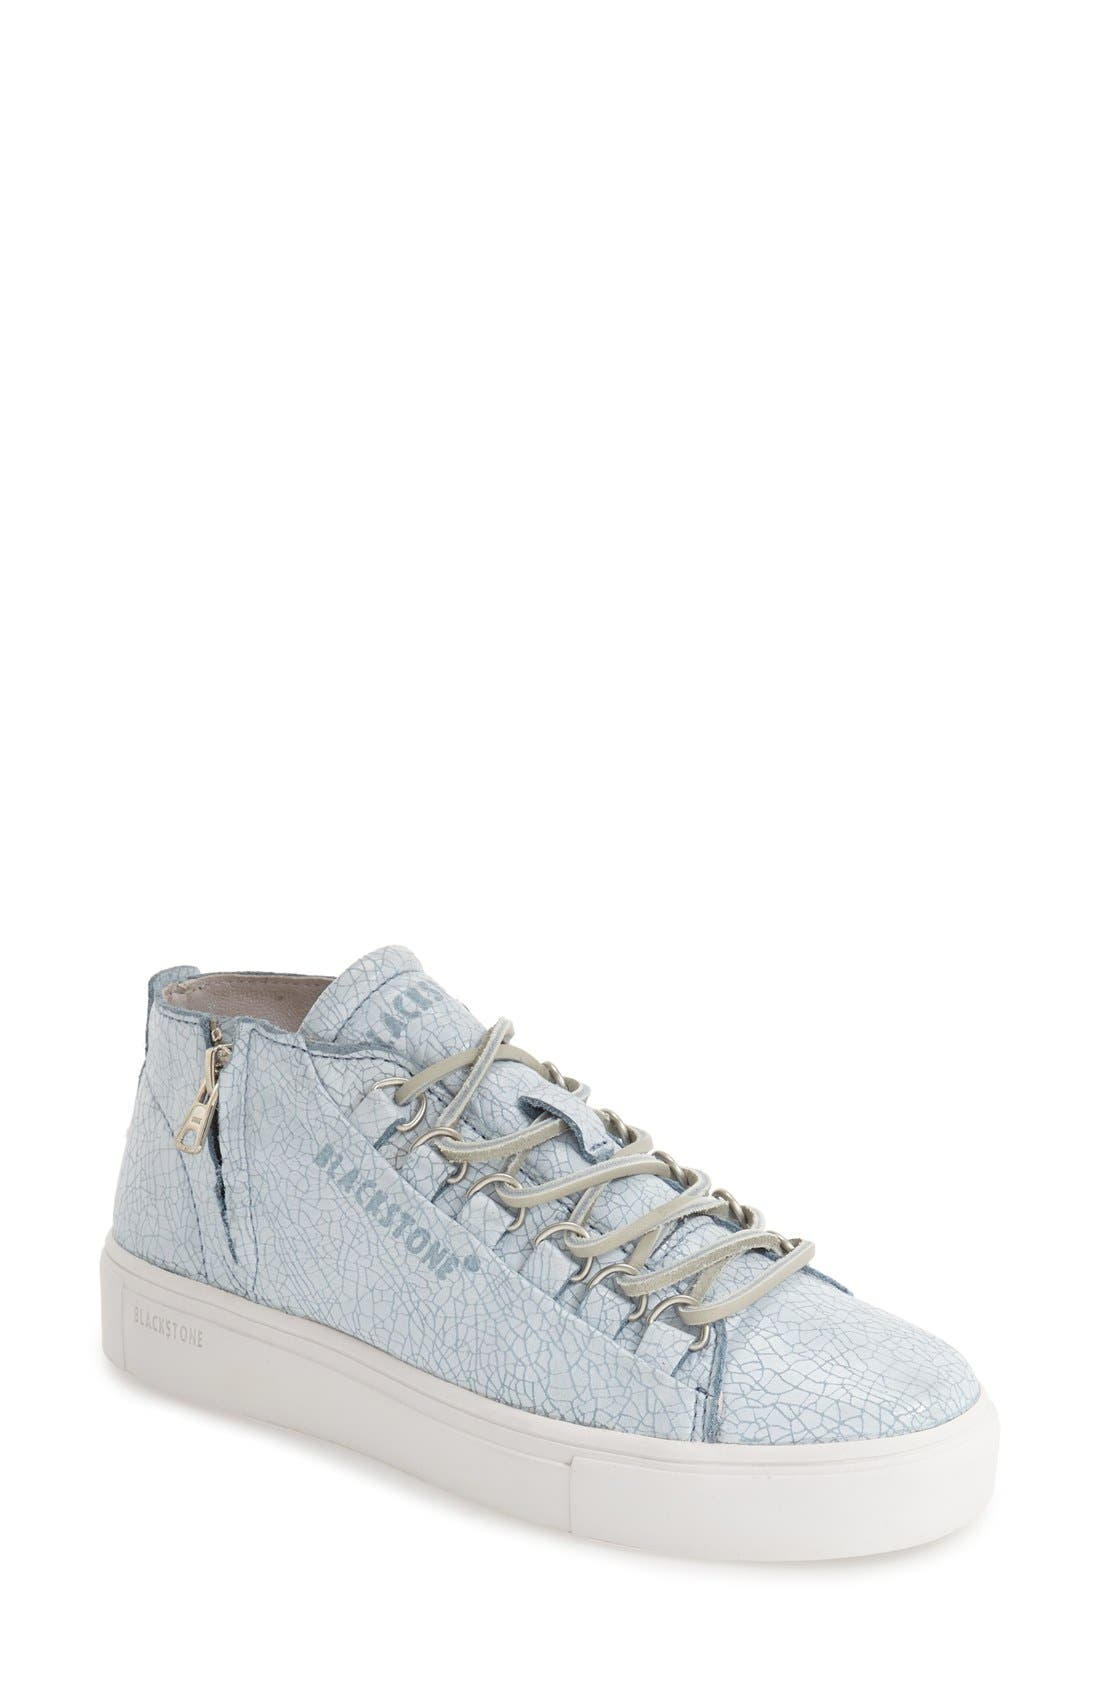 'LL60' Midi Sneaker,                             Main thumbnail 1, color,                             BLUE/ WHITE LEATHER